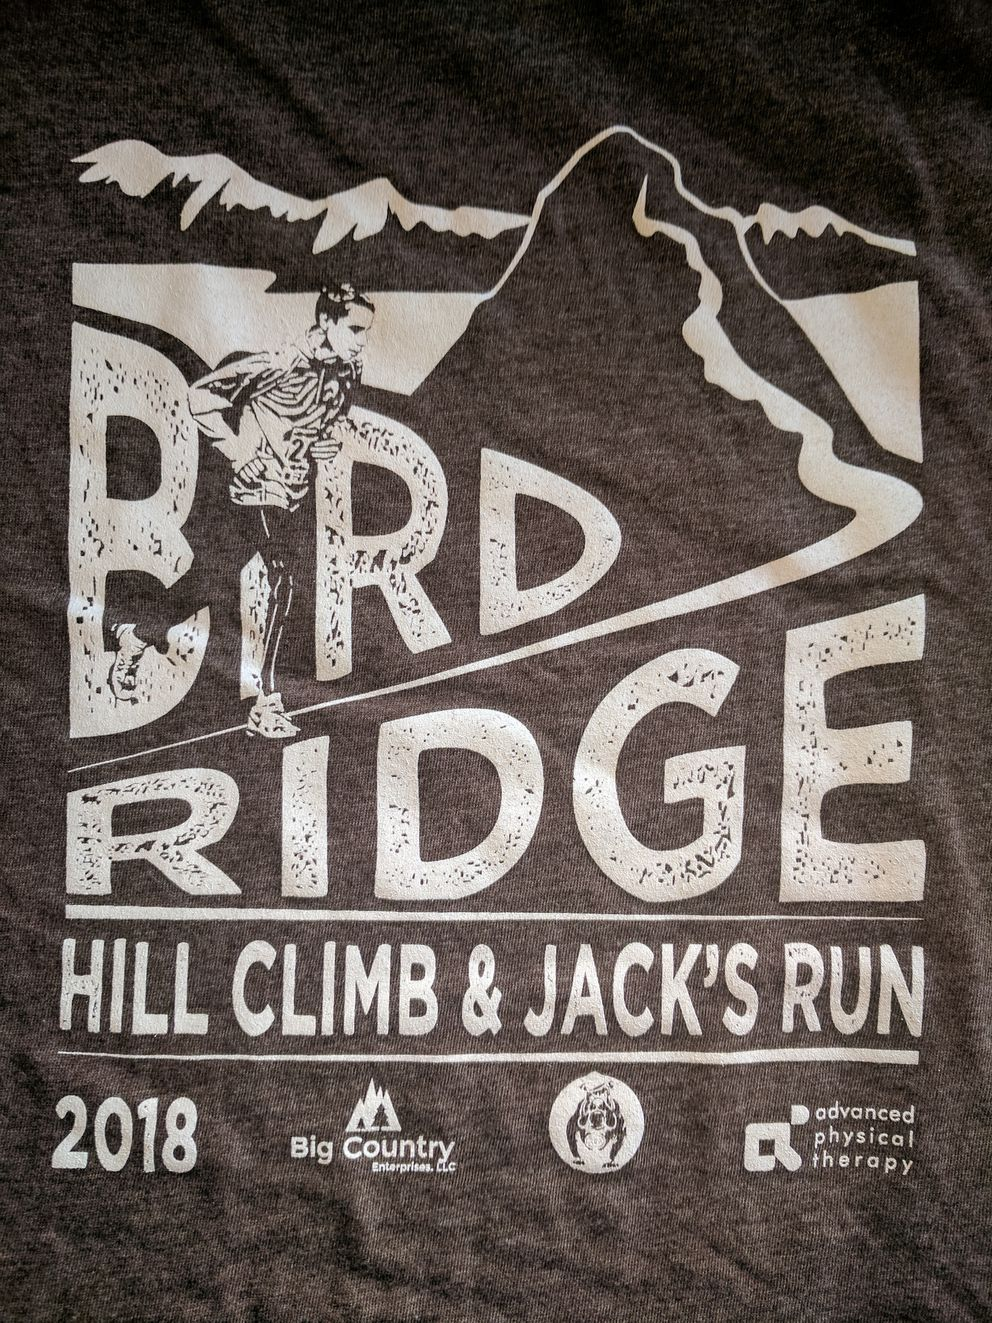 Sunday's race T-shirtwill display the new name of the junior race.(Photo provided by Brad Precosky)